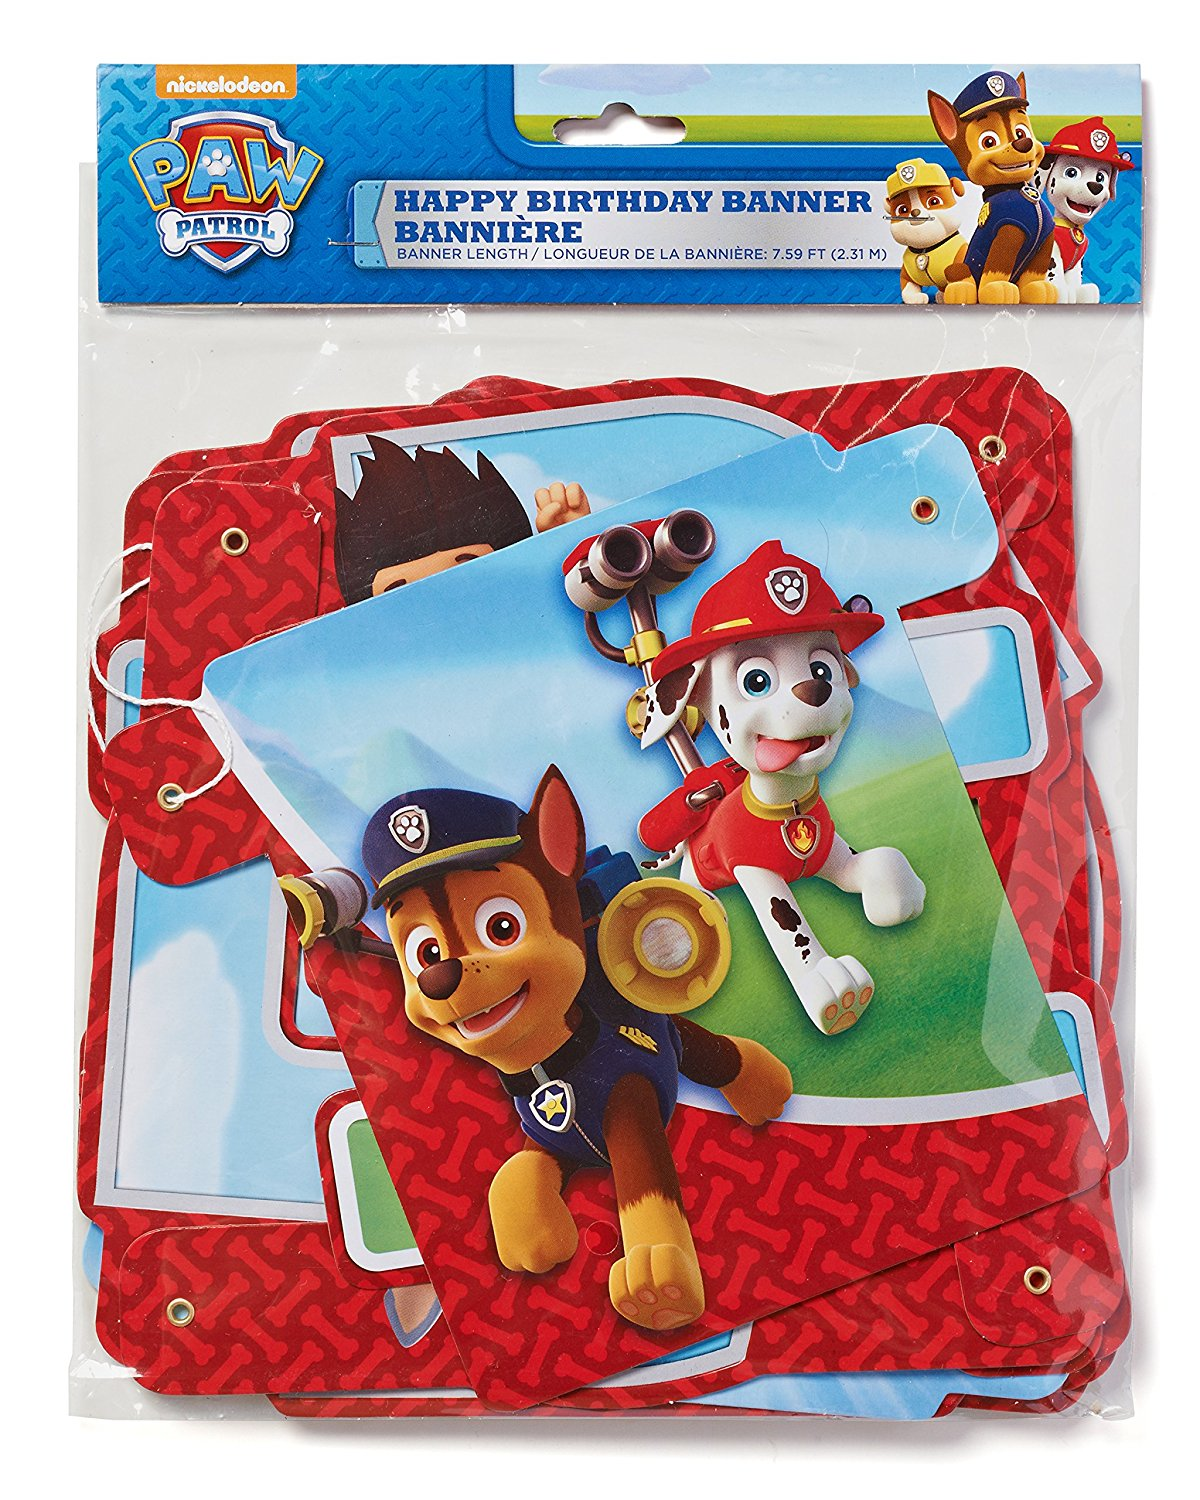 American Greetings Paw Patrol Birthday Party Banner Party Supply